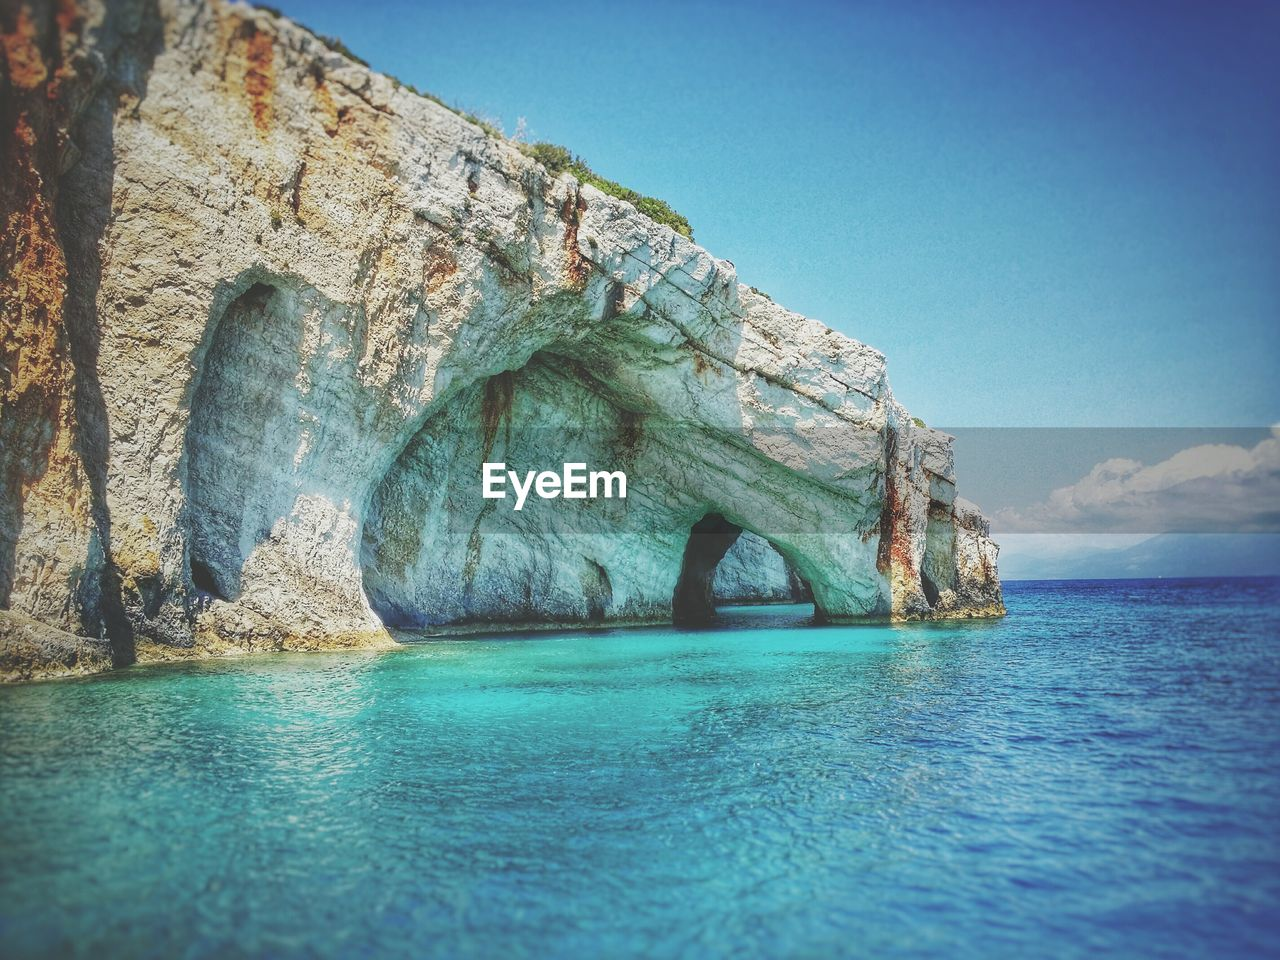 Caves by blue sea against sky at zakynthos